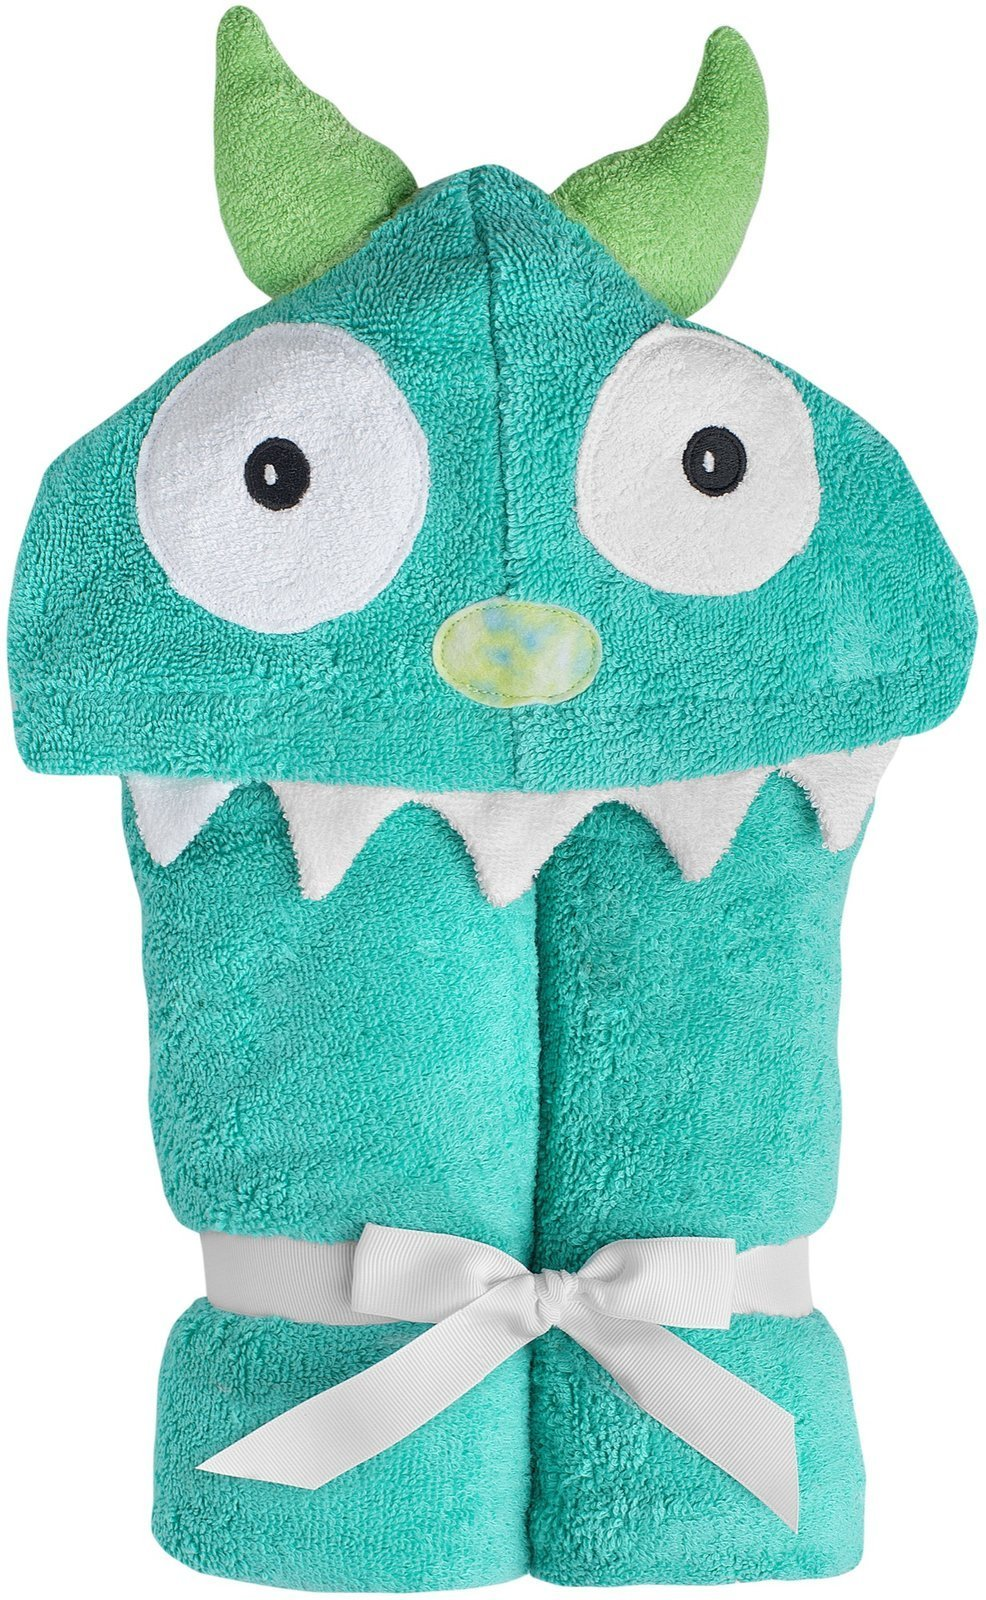 Yikes Twins Child Hooded Towel - Turquoise Monster by Yikes Twins